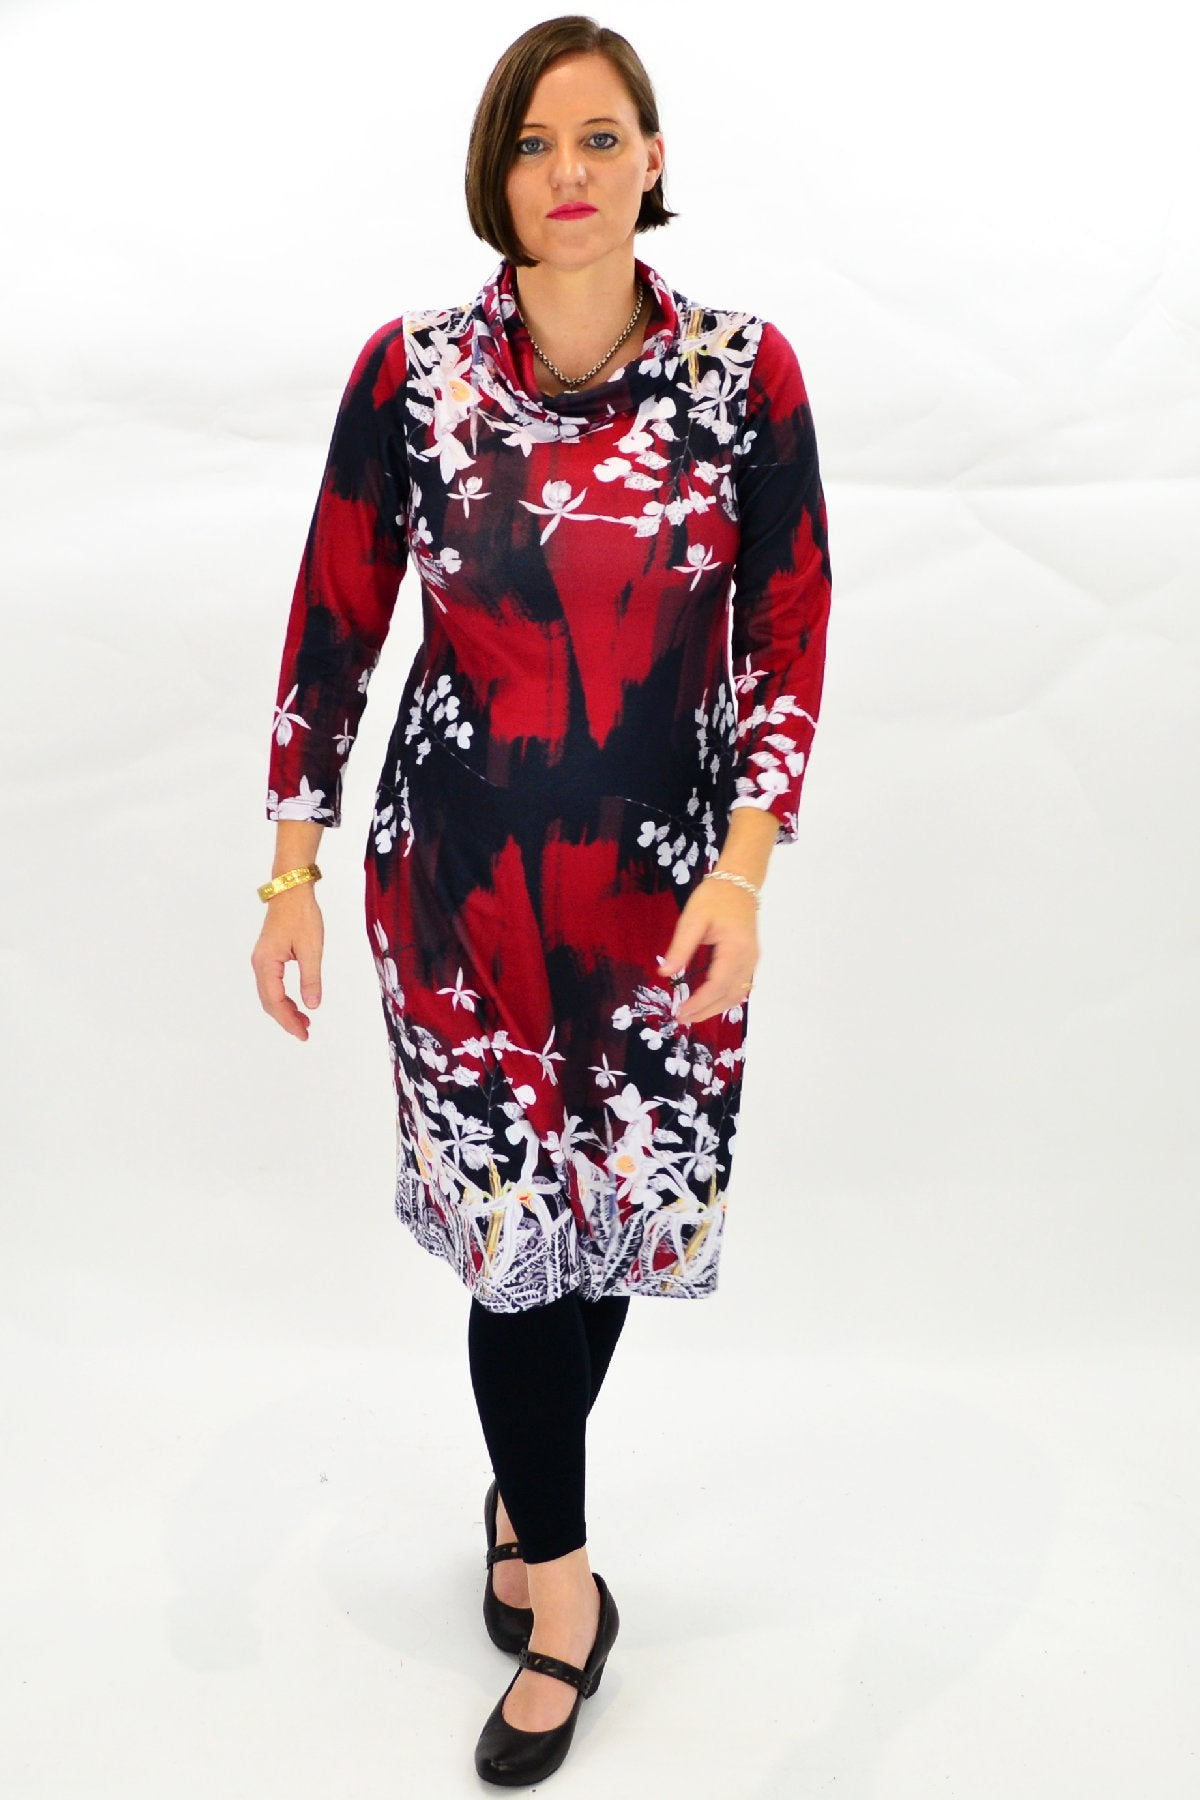 Dragonfly Tunic Dress | I Love Tunics | Tunic Tops | Tunic | Tunic Dresses  | womens clothing online